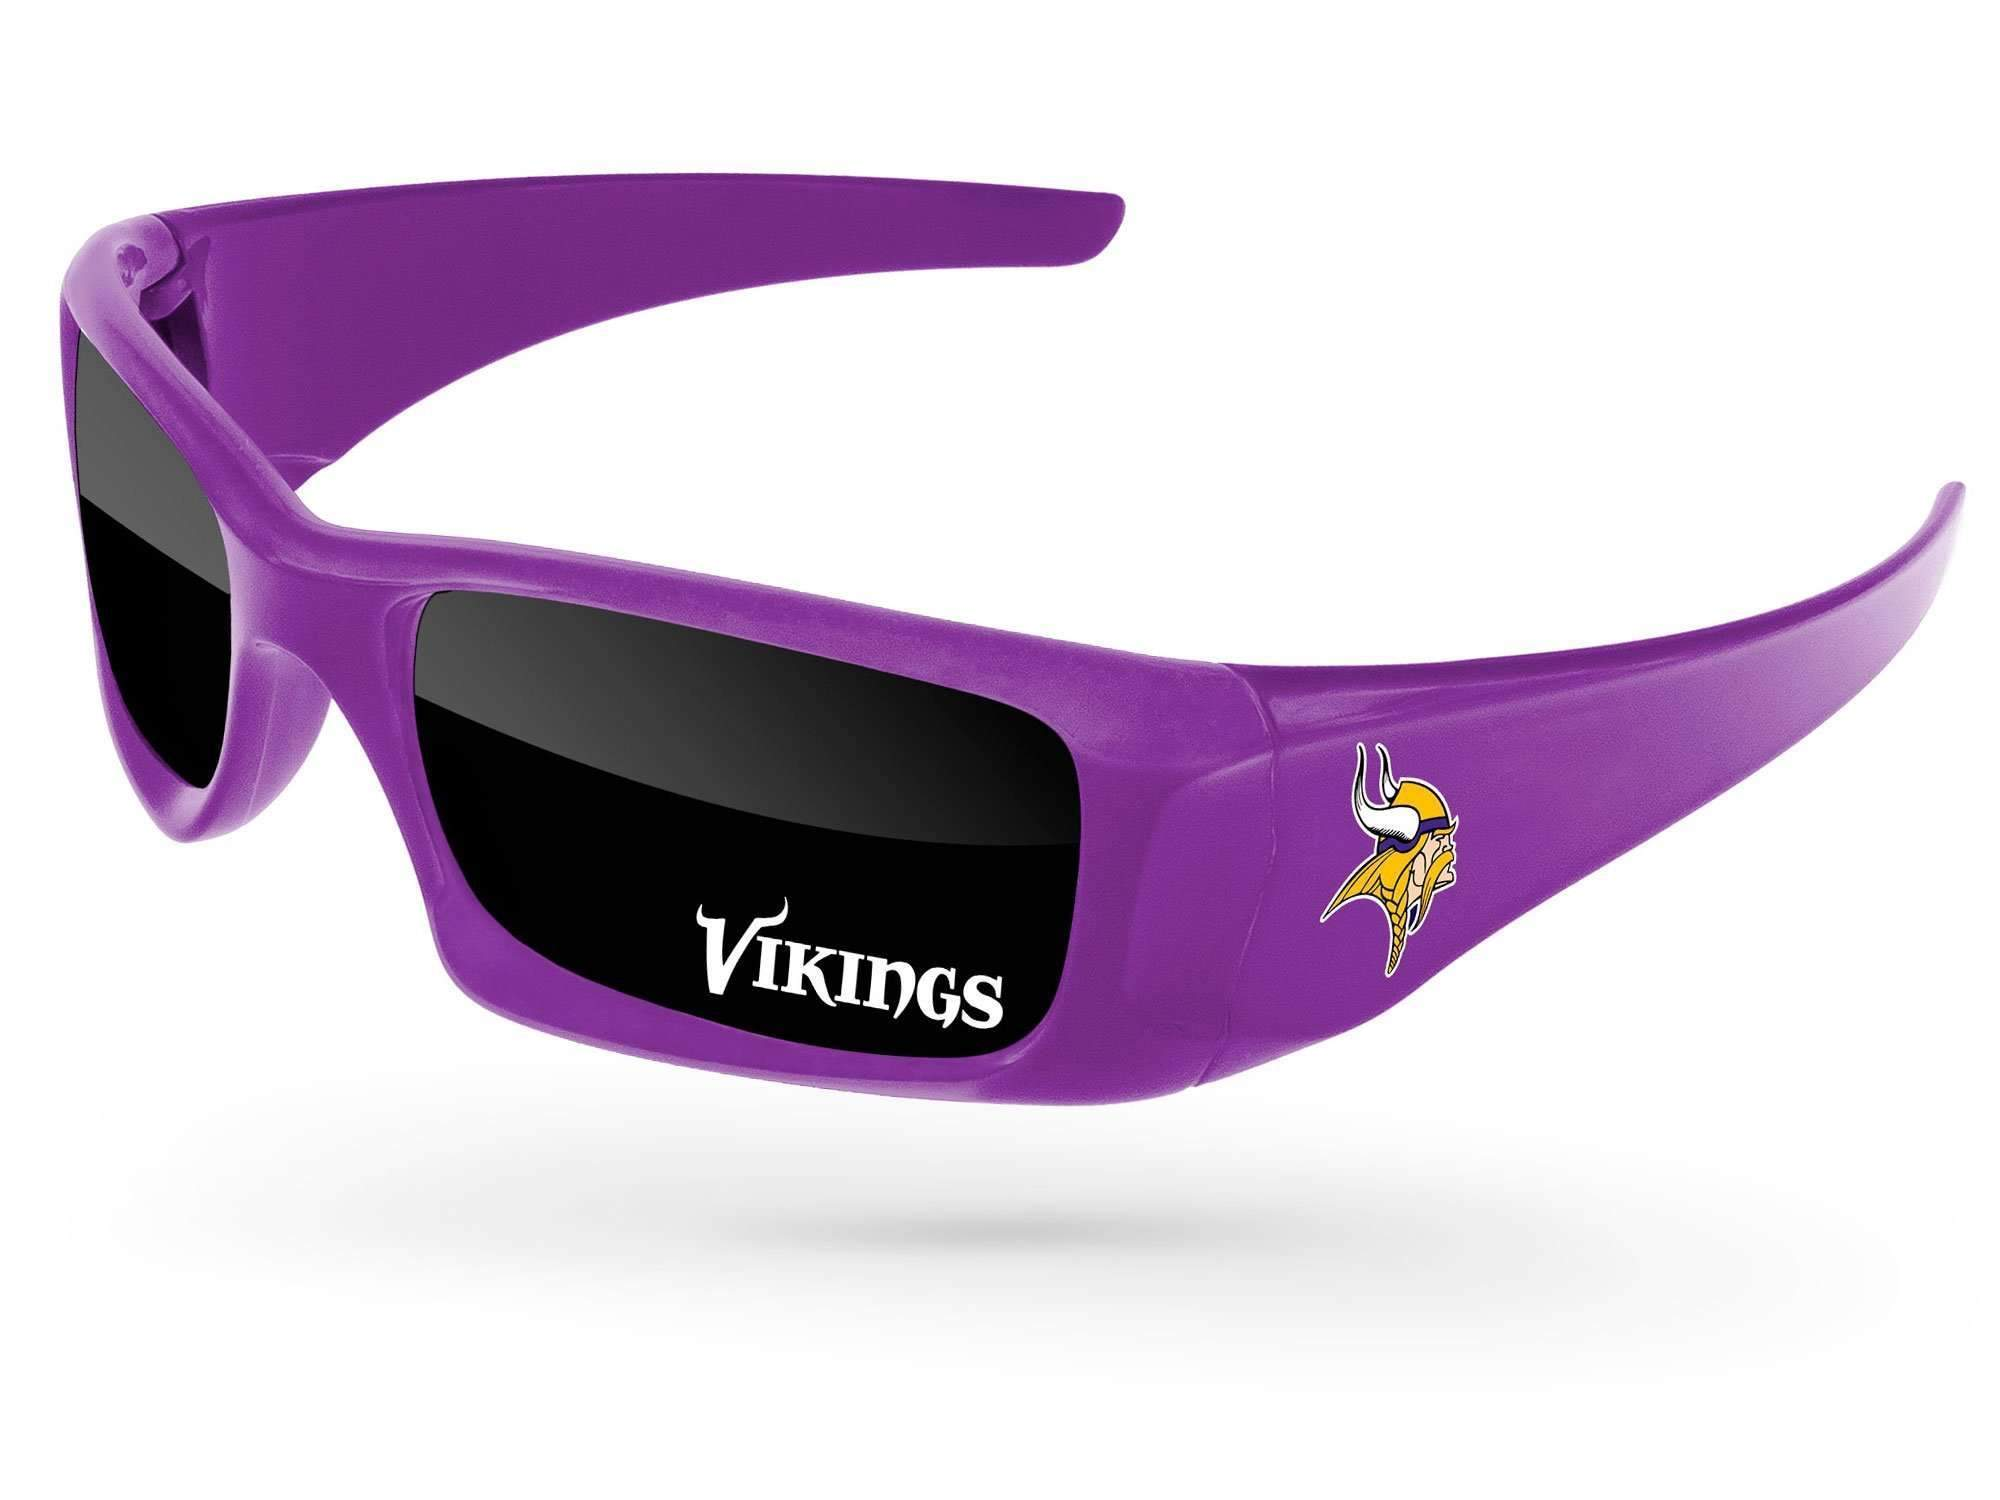 WD520 - Wrap Promotional Sunglasses w/ 1-color lens imprint & full-color temple imprint